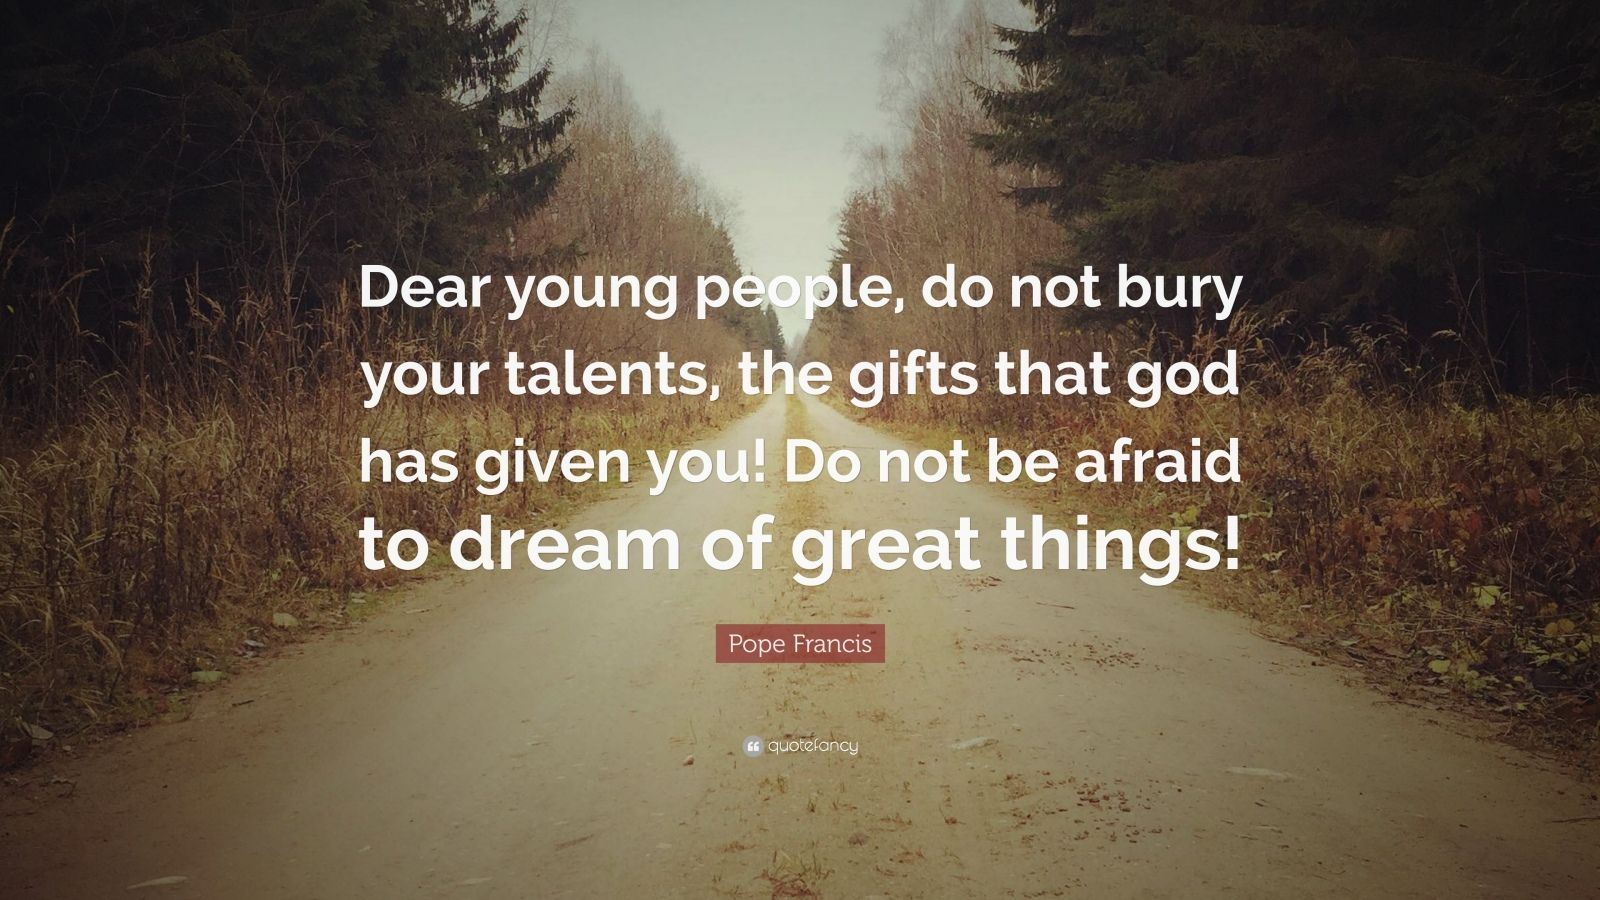 """Pope Francis Quote: """"Dear young people, do not bury your talents, the gifts that god has given you! Do not be afraid to dream of great things!"""""""